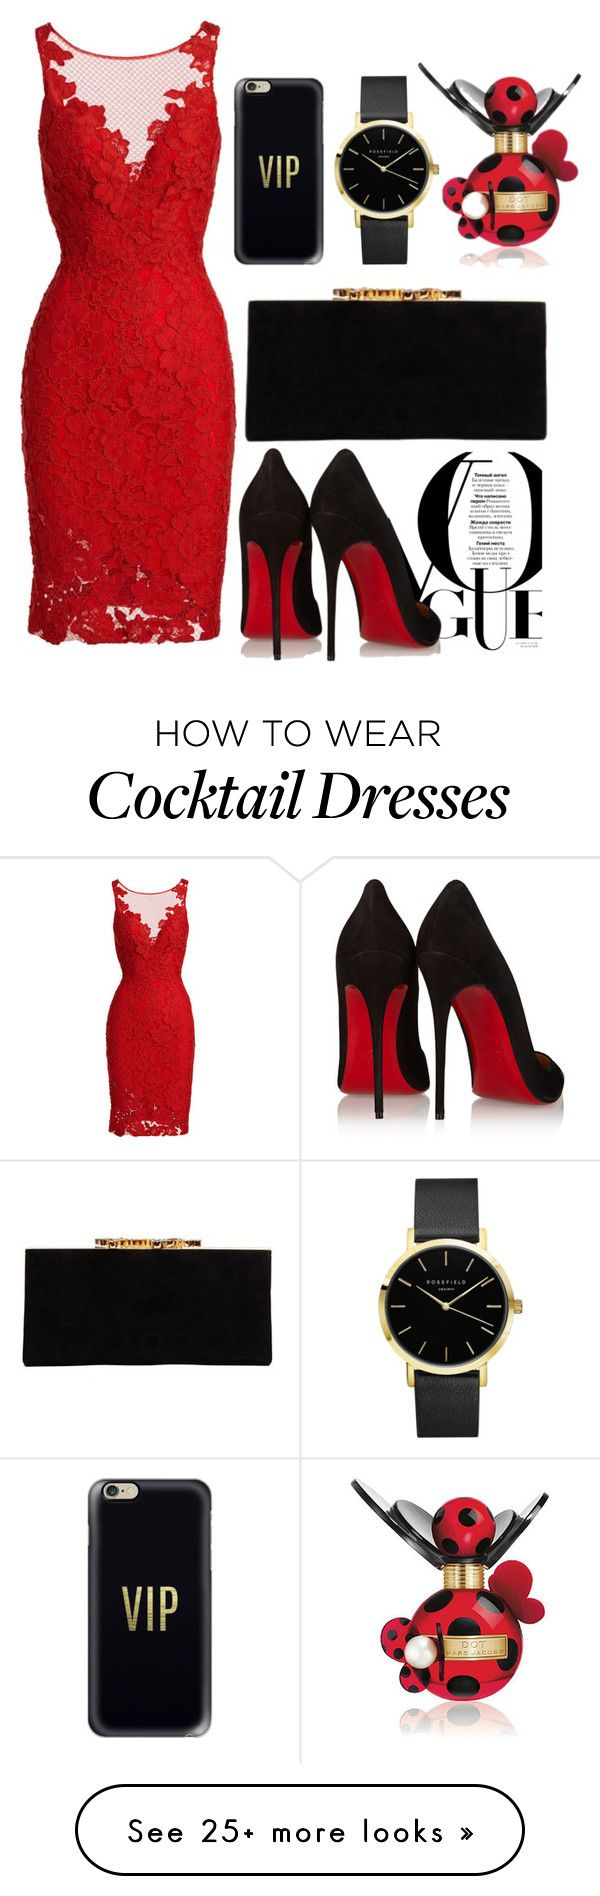 """""""VIP"""" by denaexr on Polyvore featuring ML Monique Lhuillier, Marc Jacobs, Christian Louboutin, Jimmy Choo and Casetify"""